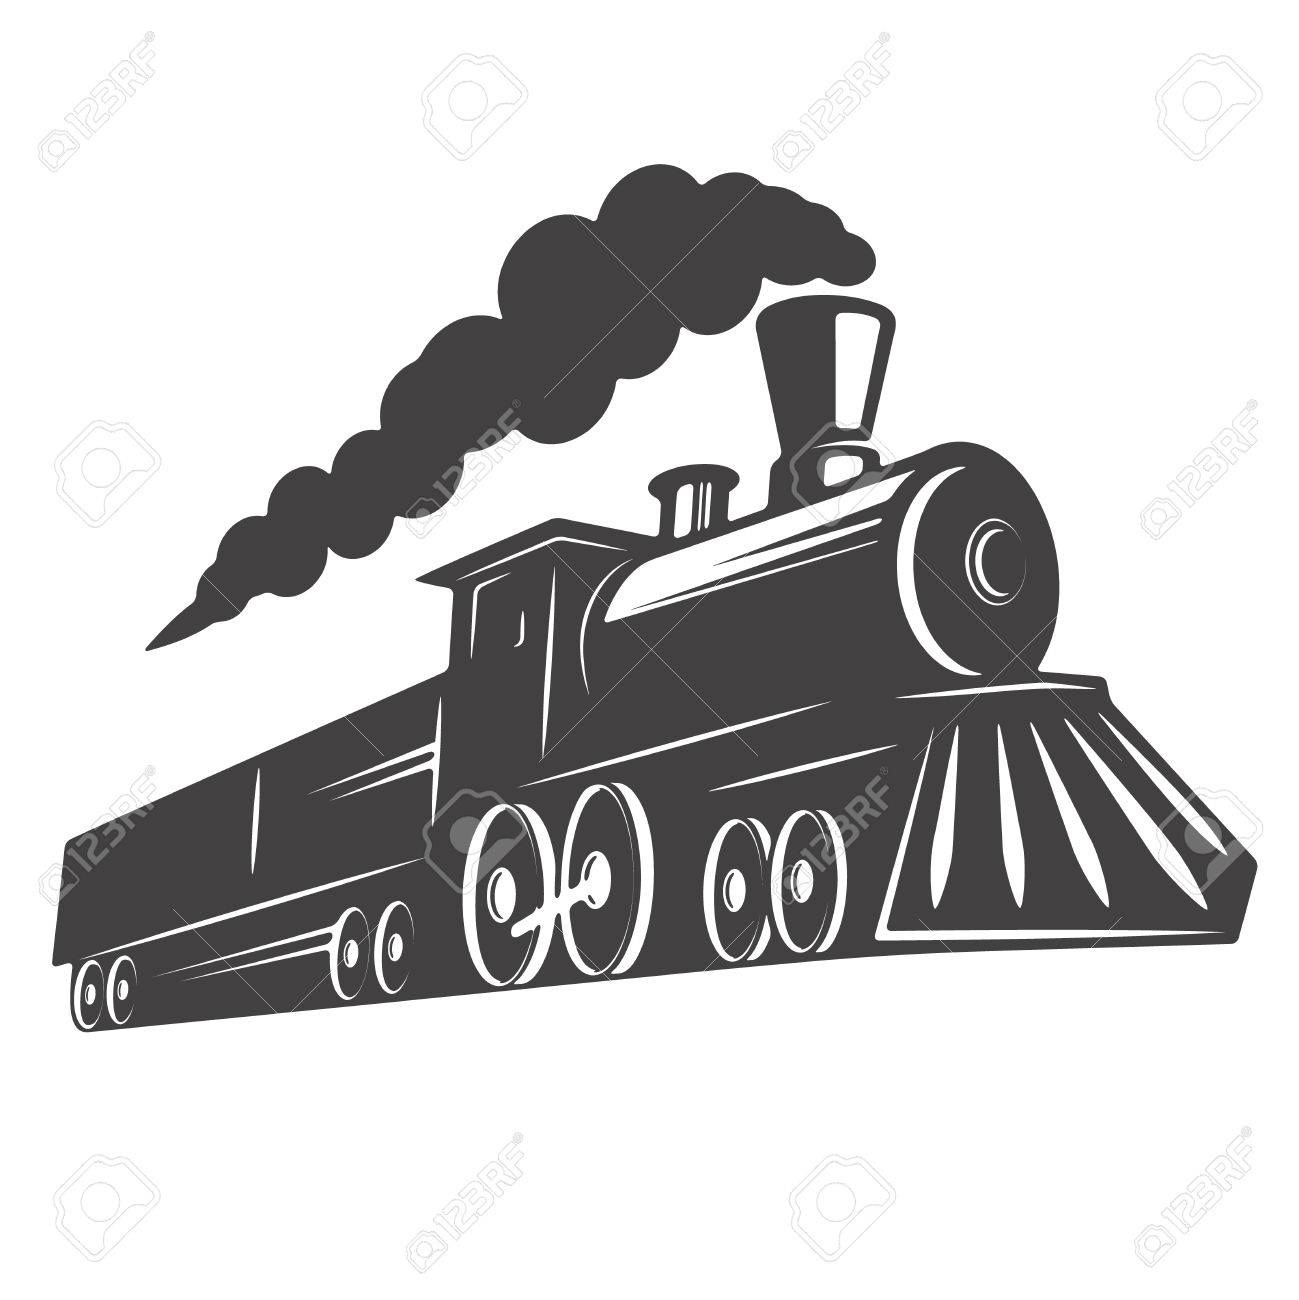 Vintage Train Isolated On White Background Design Element For Royalty Free Cliparts Vectors And Stock Illustration Image 83461124